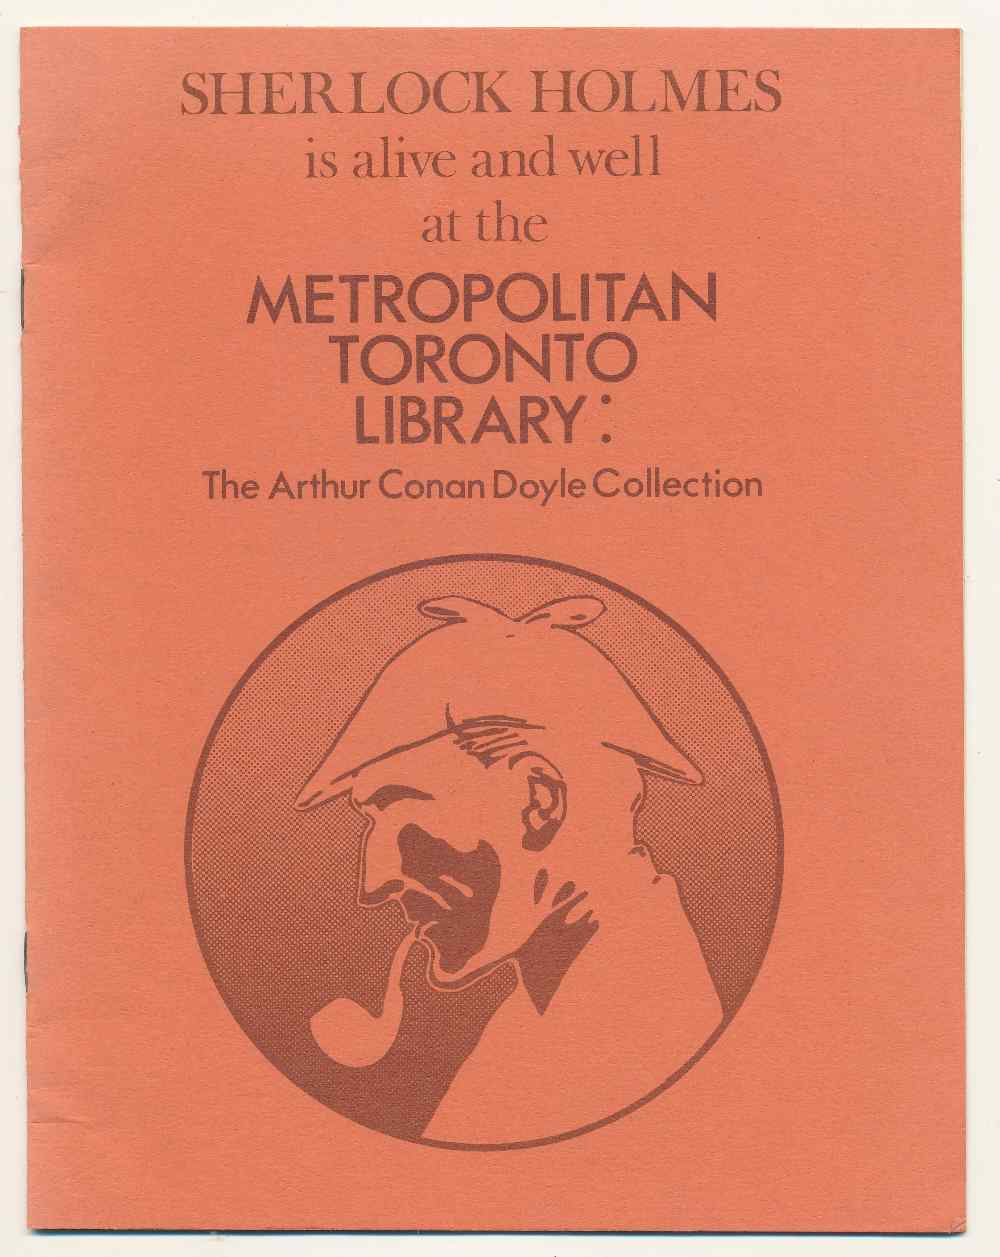 Sherlock Holmes is alive and well at the Metropolitan Toronto Library : the Arthur Conan Doyle Collection